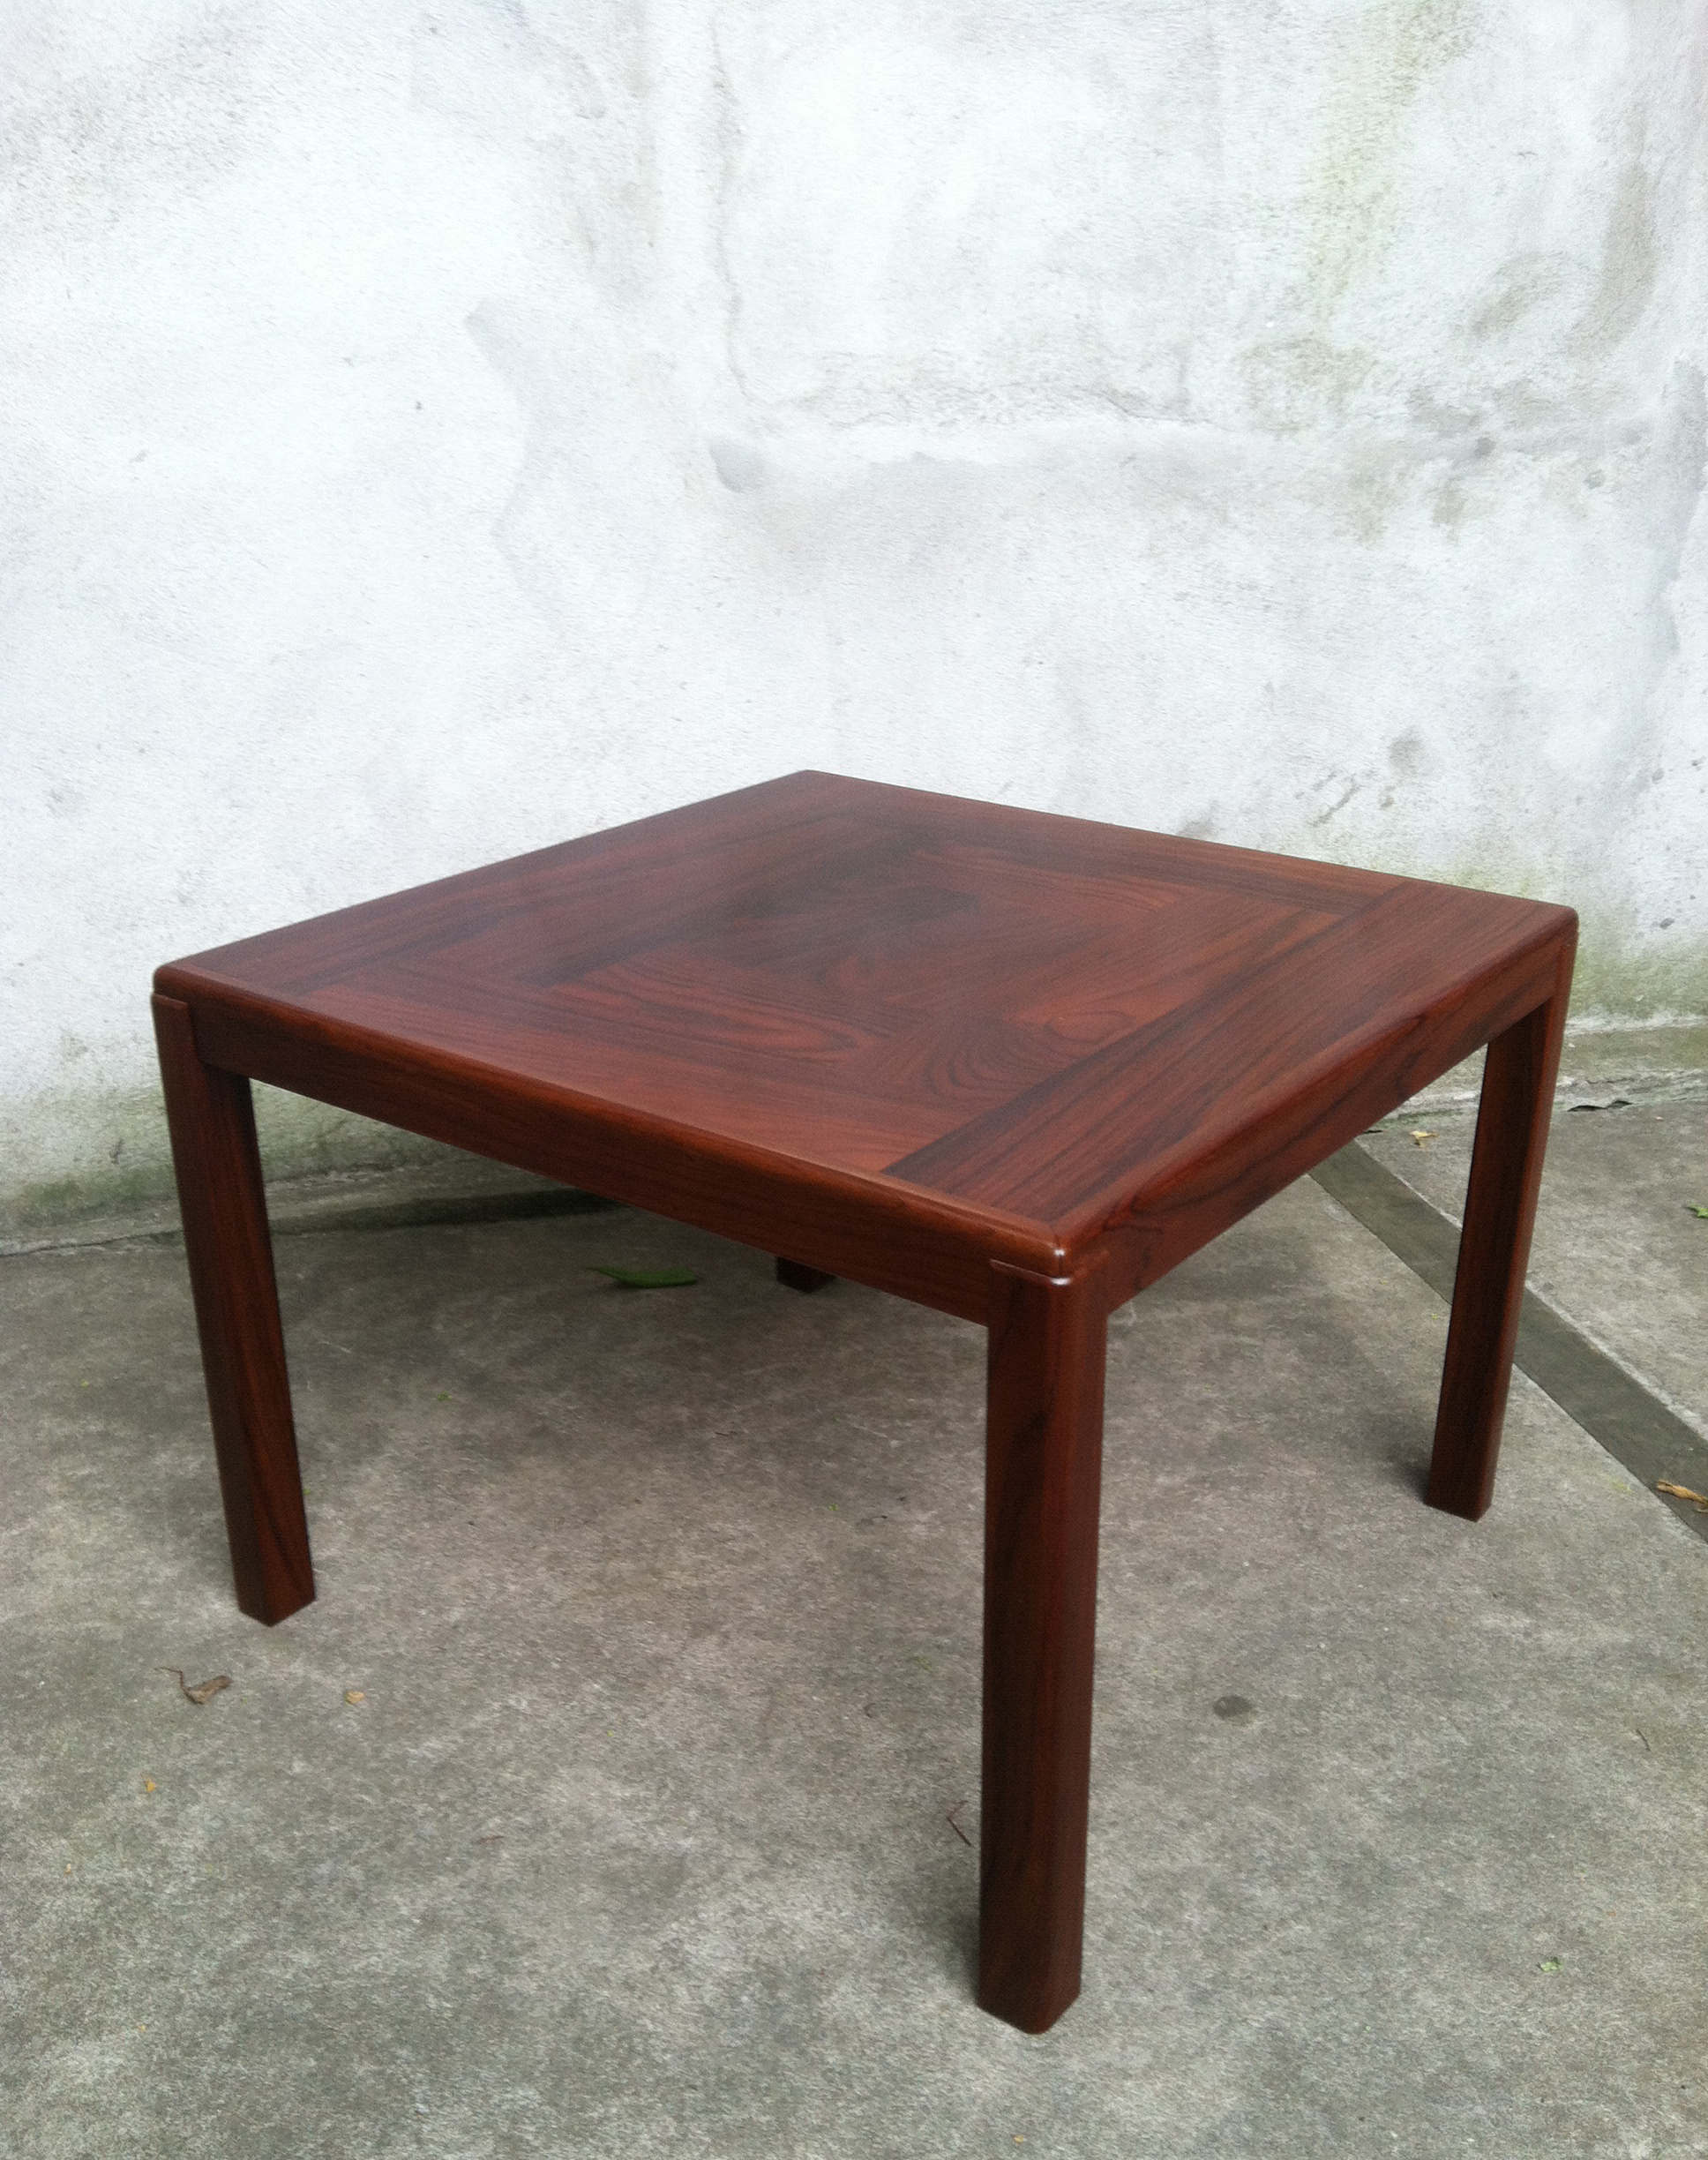 DANISH MODERN ROSEWOOD SQUARE SIDE TABLE BY VEJLE STOLE